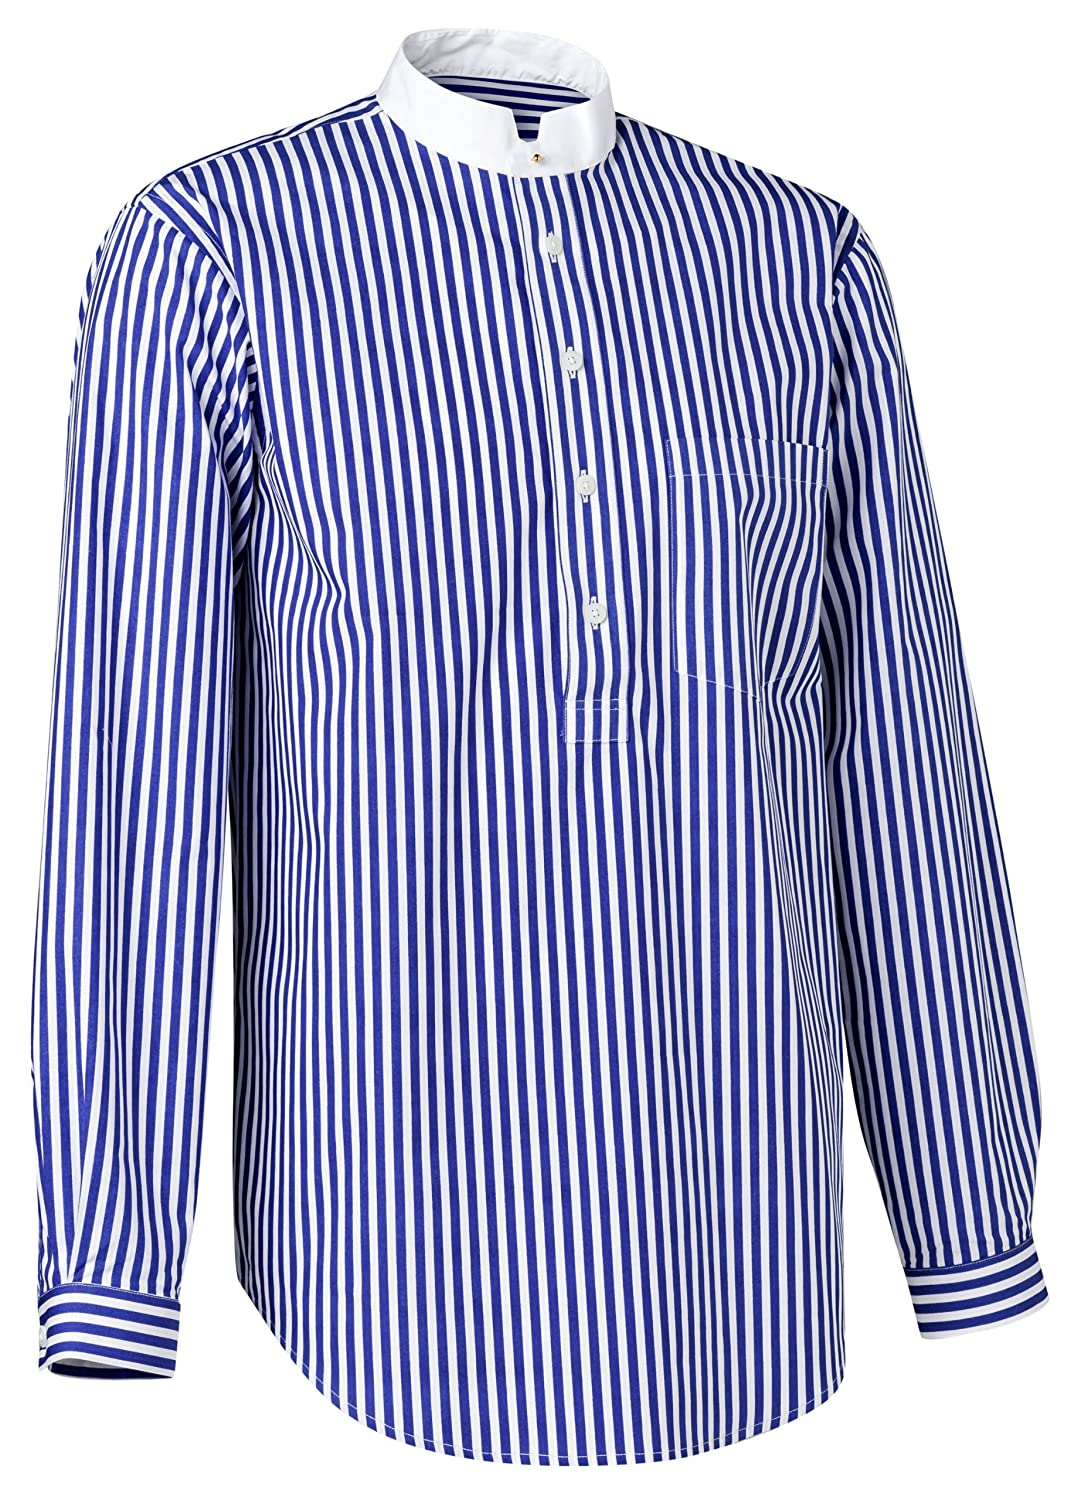 Edwardian Men's Shirts & Sweaters Cinque Terre Pullover Shirt $112.70 AT vintagedancer.com